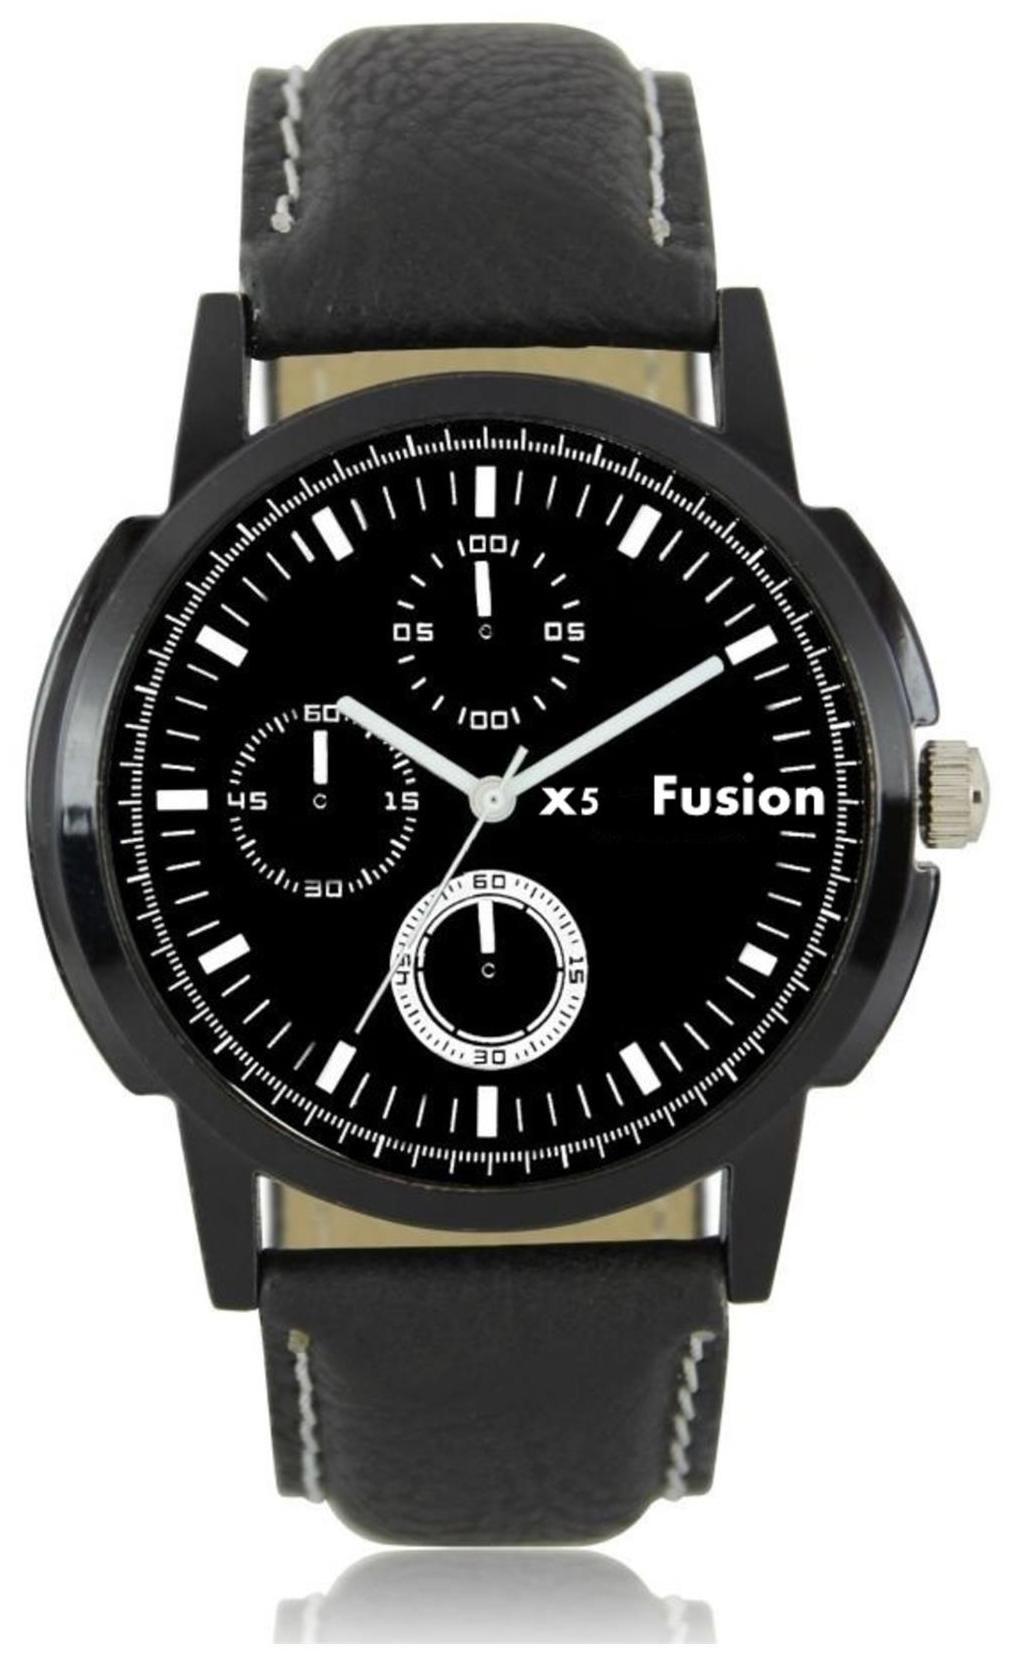 X5 Fusion Black 4515 Watch for Men's : Boys